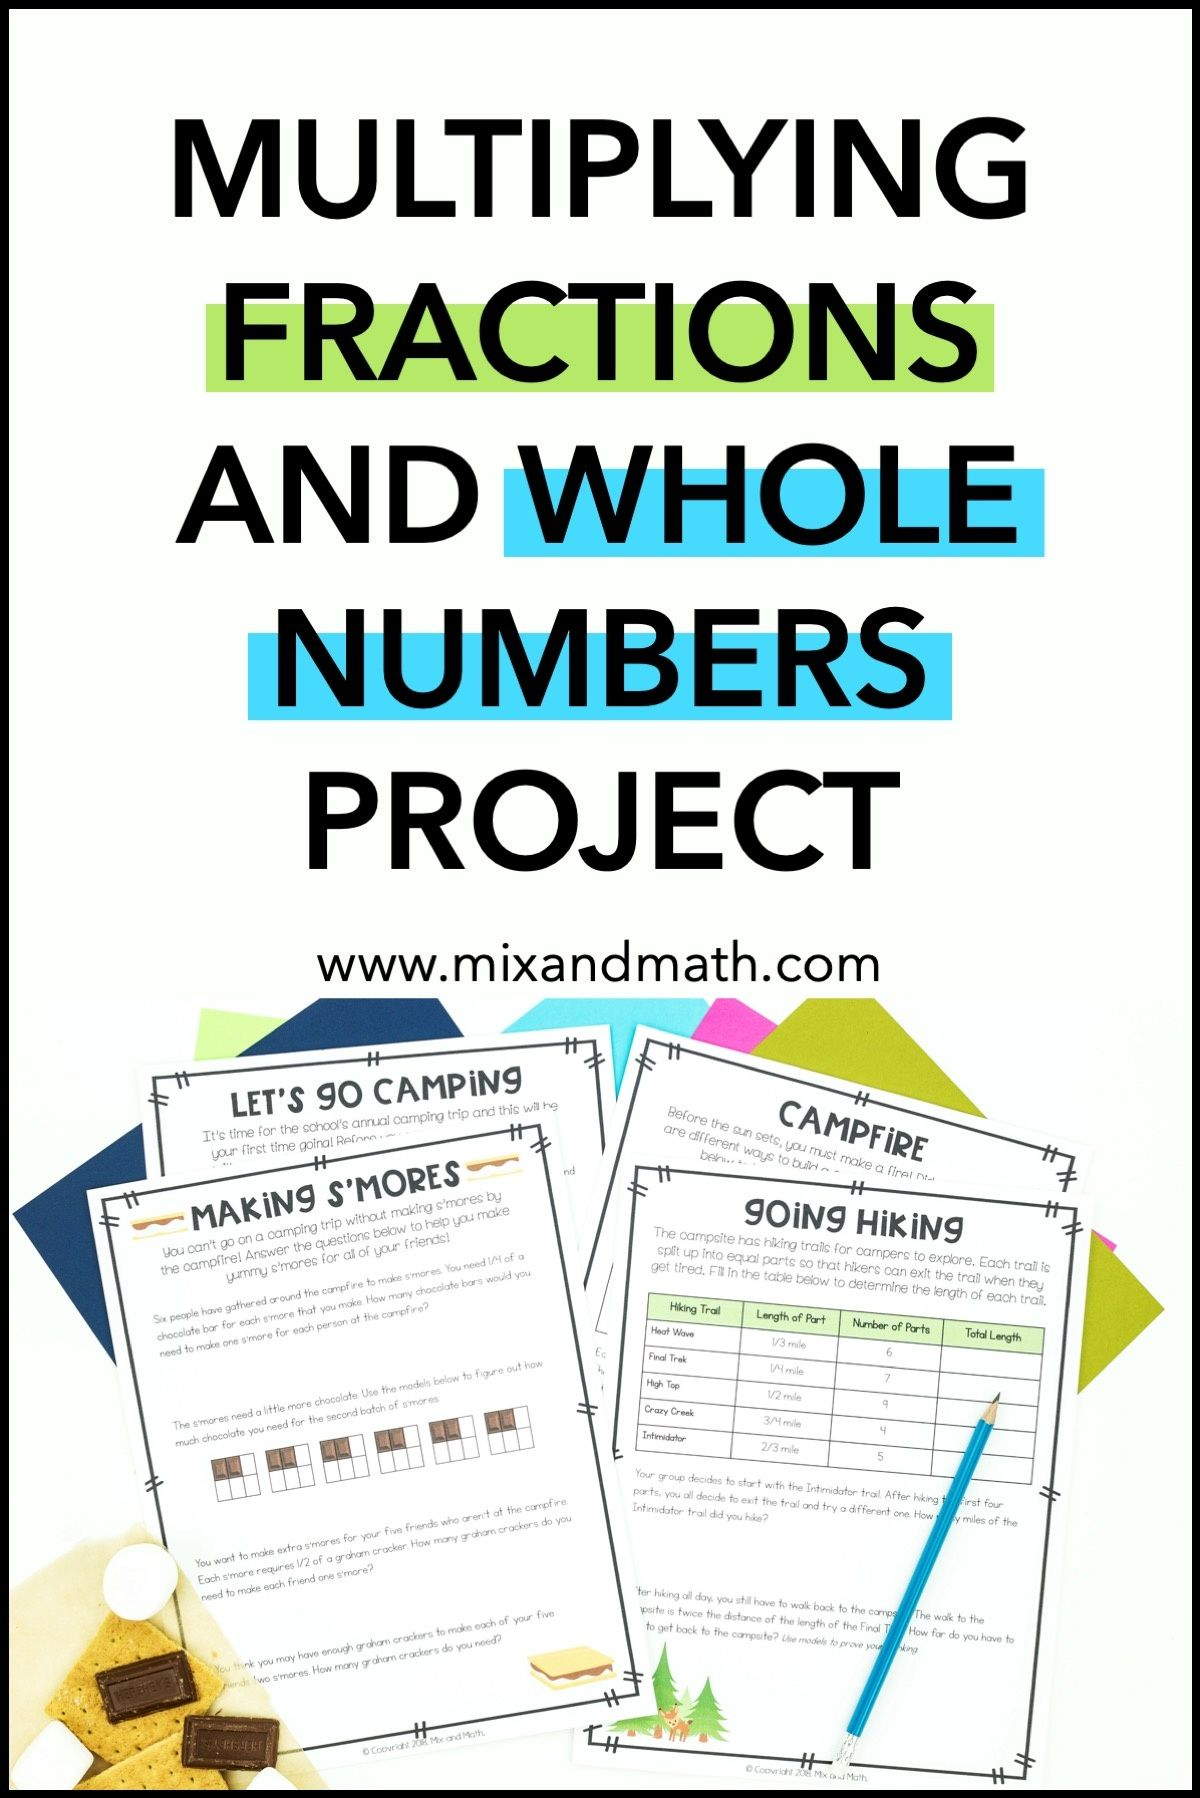 Multiplying Whole Numbers And Fractions Project